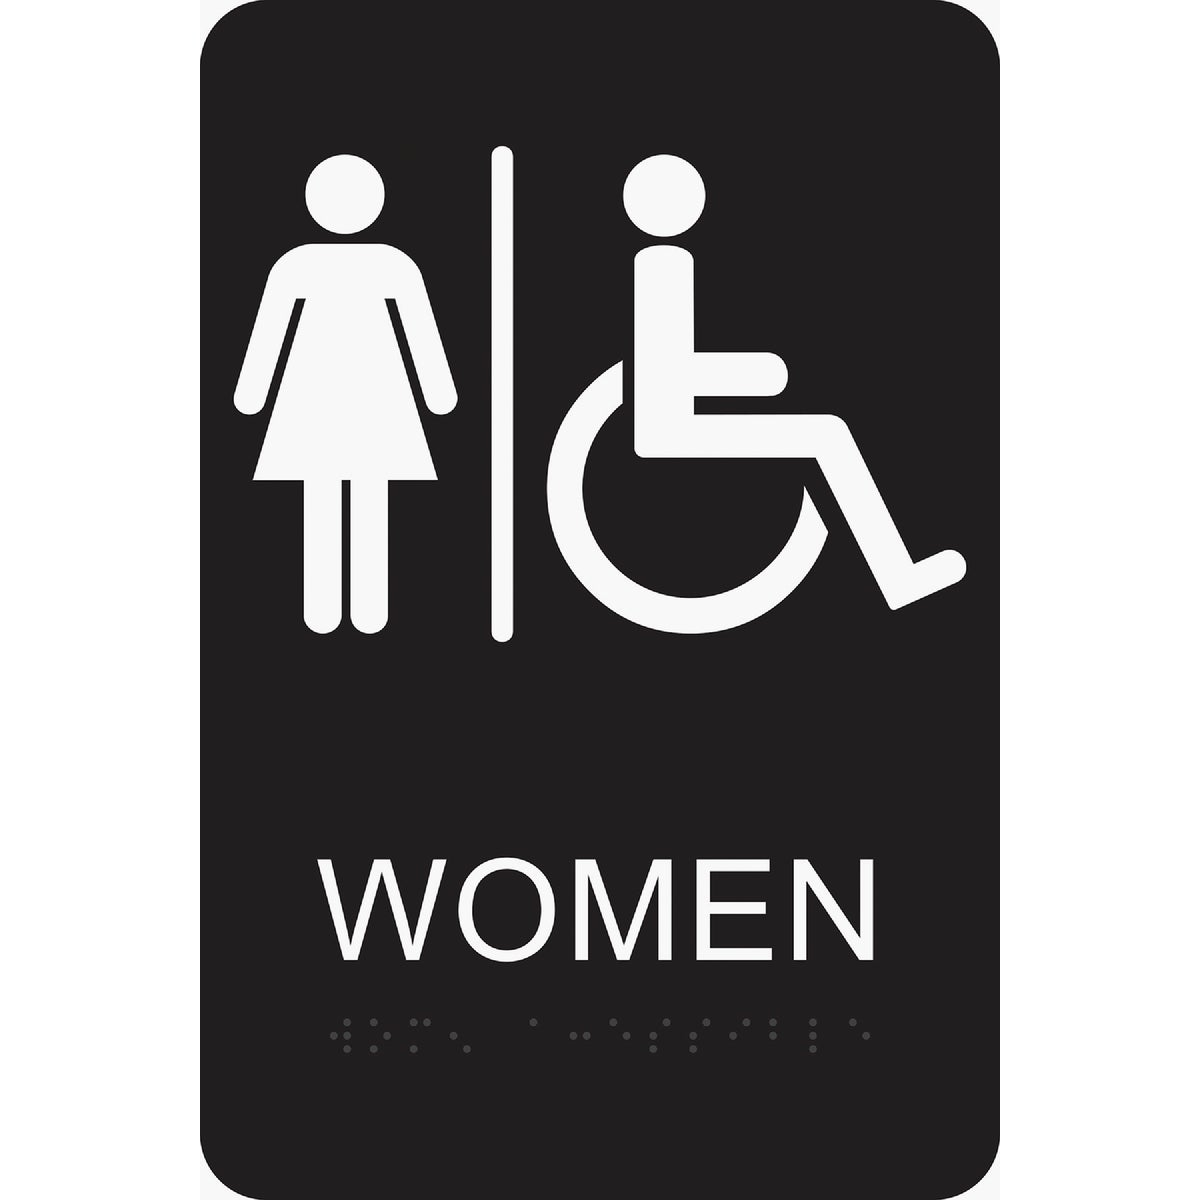 6X9 BRAILLE WMN/HND SIGN - DB-2 by Hy Ko Prods Co